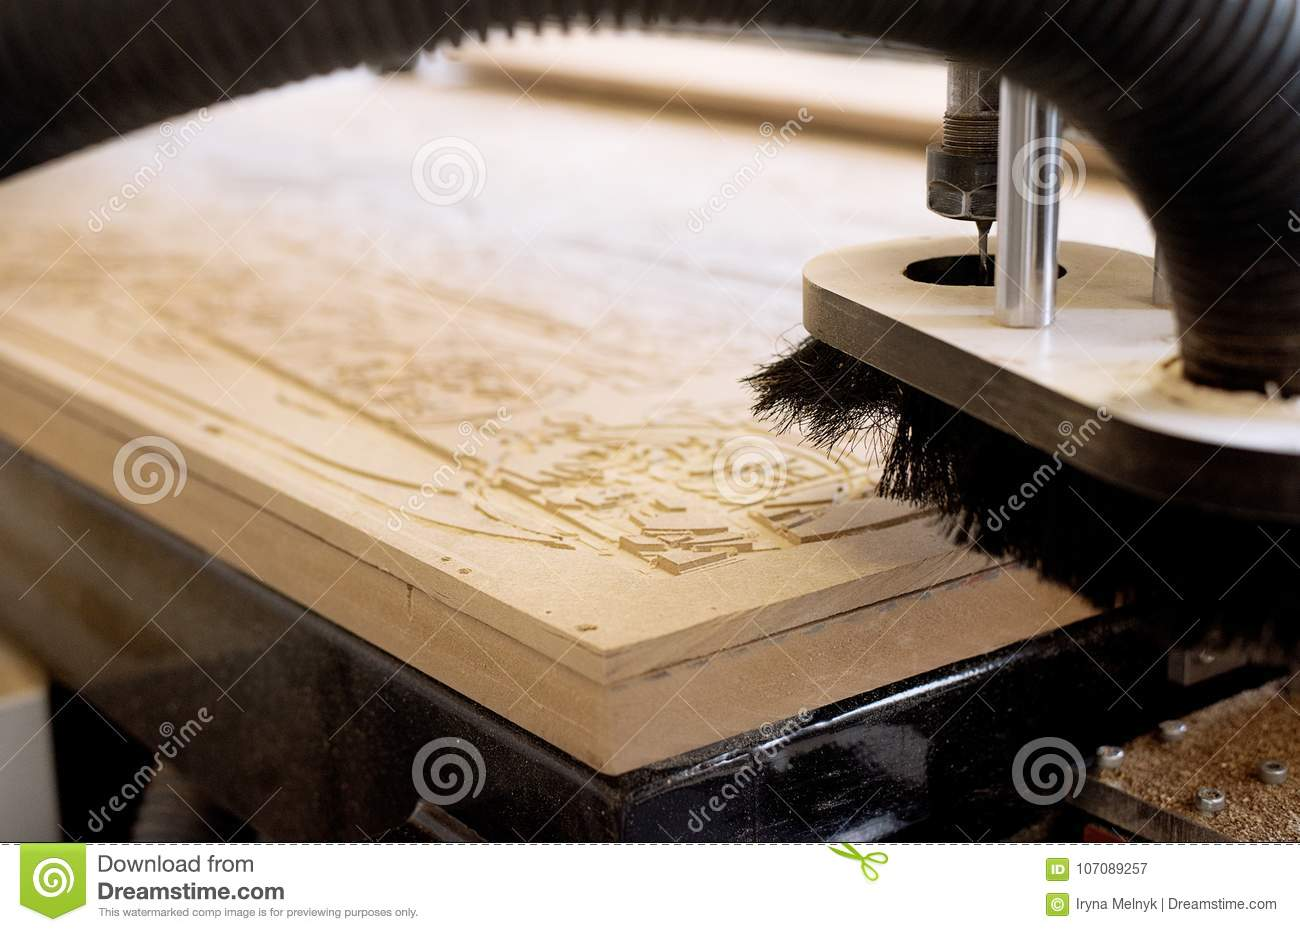 Cnc Wood Carving Machines Stock Image Image Of Hand 107089257